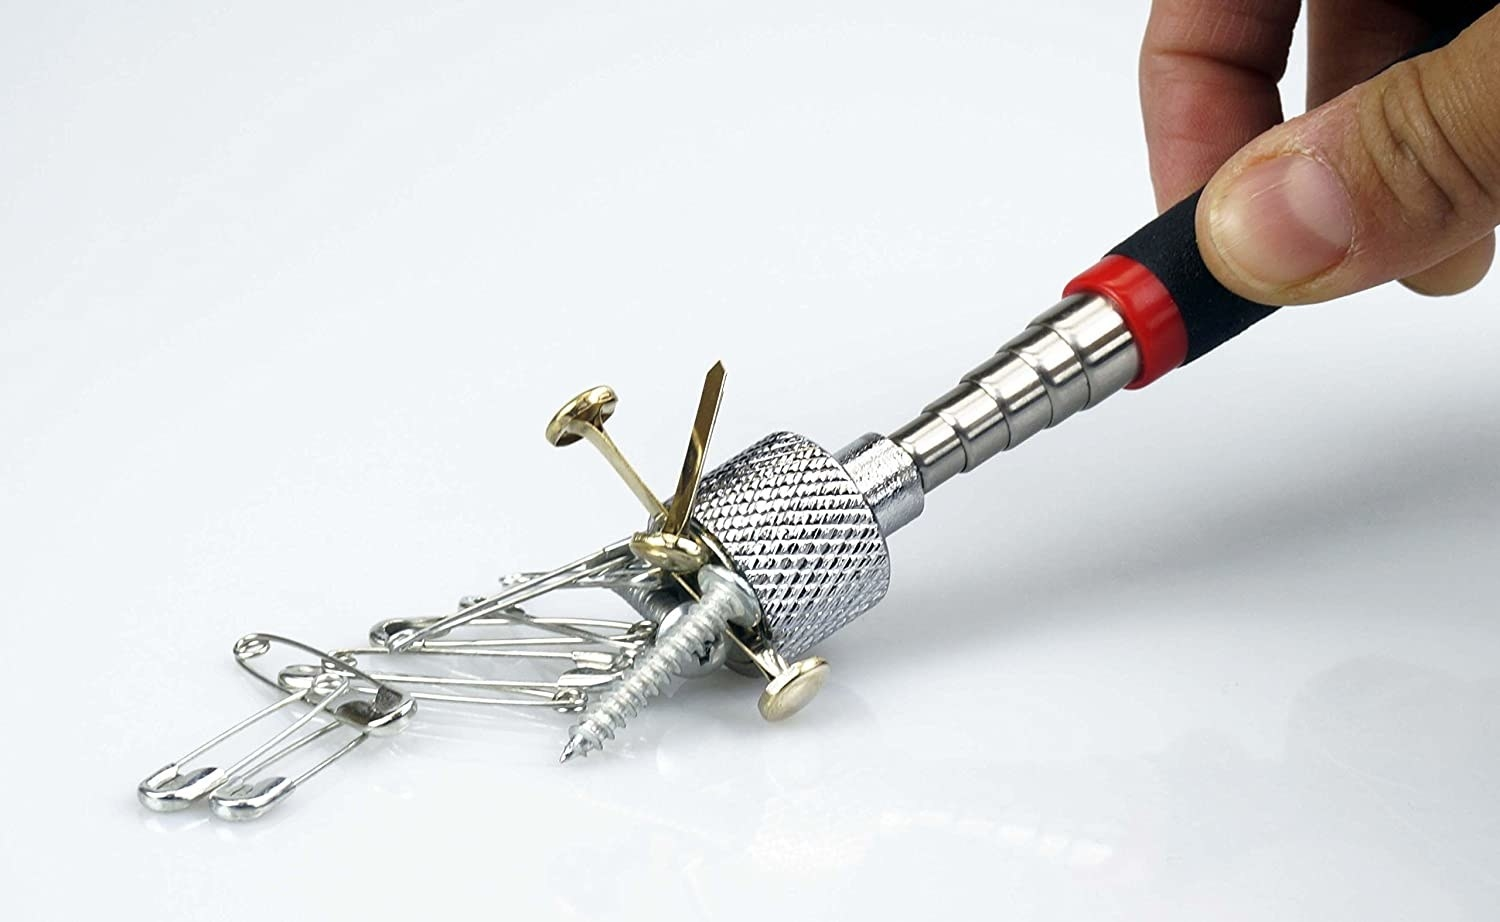 The grabber magnetizing metal pieces